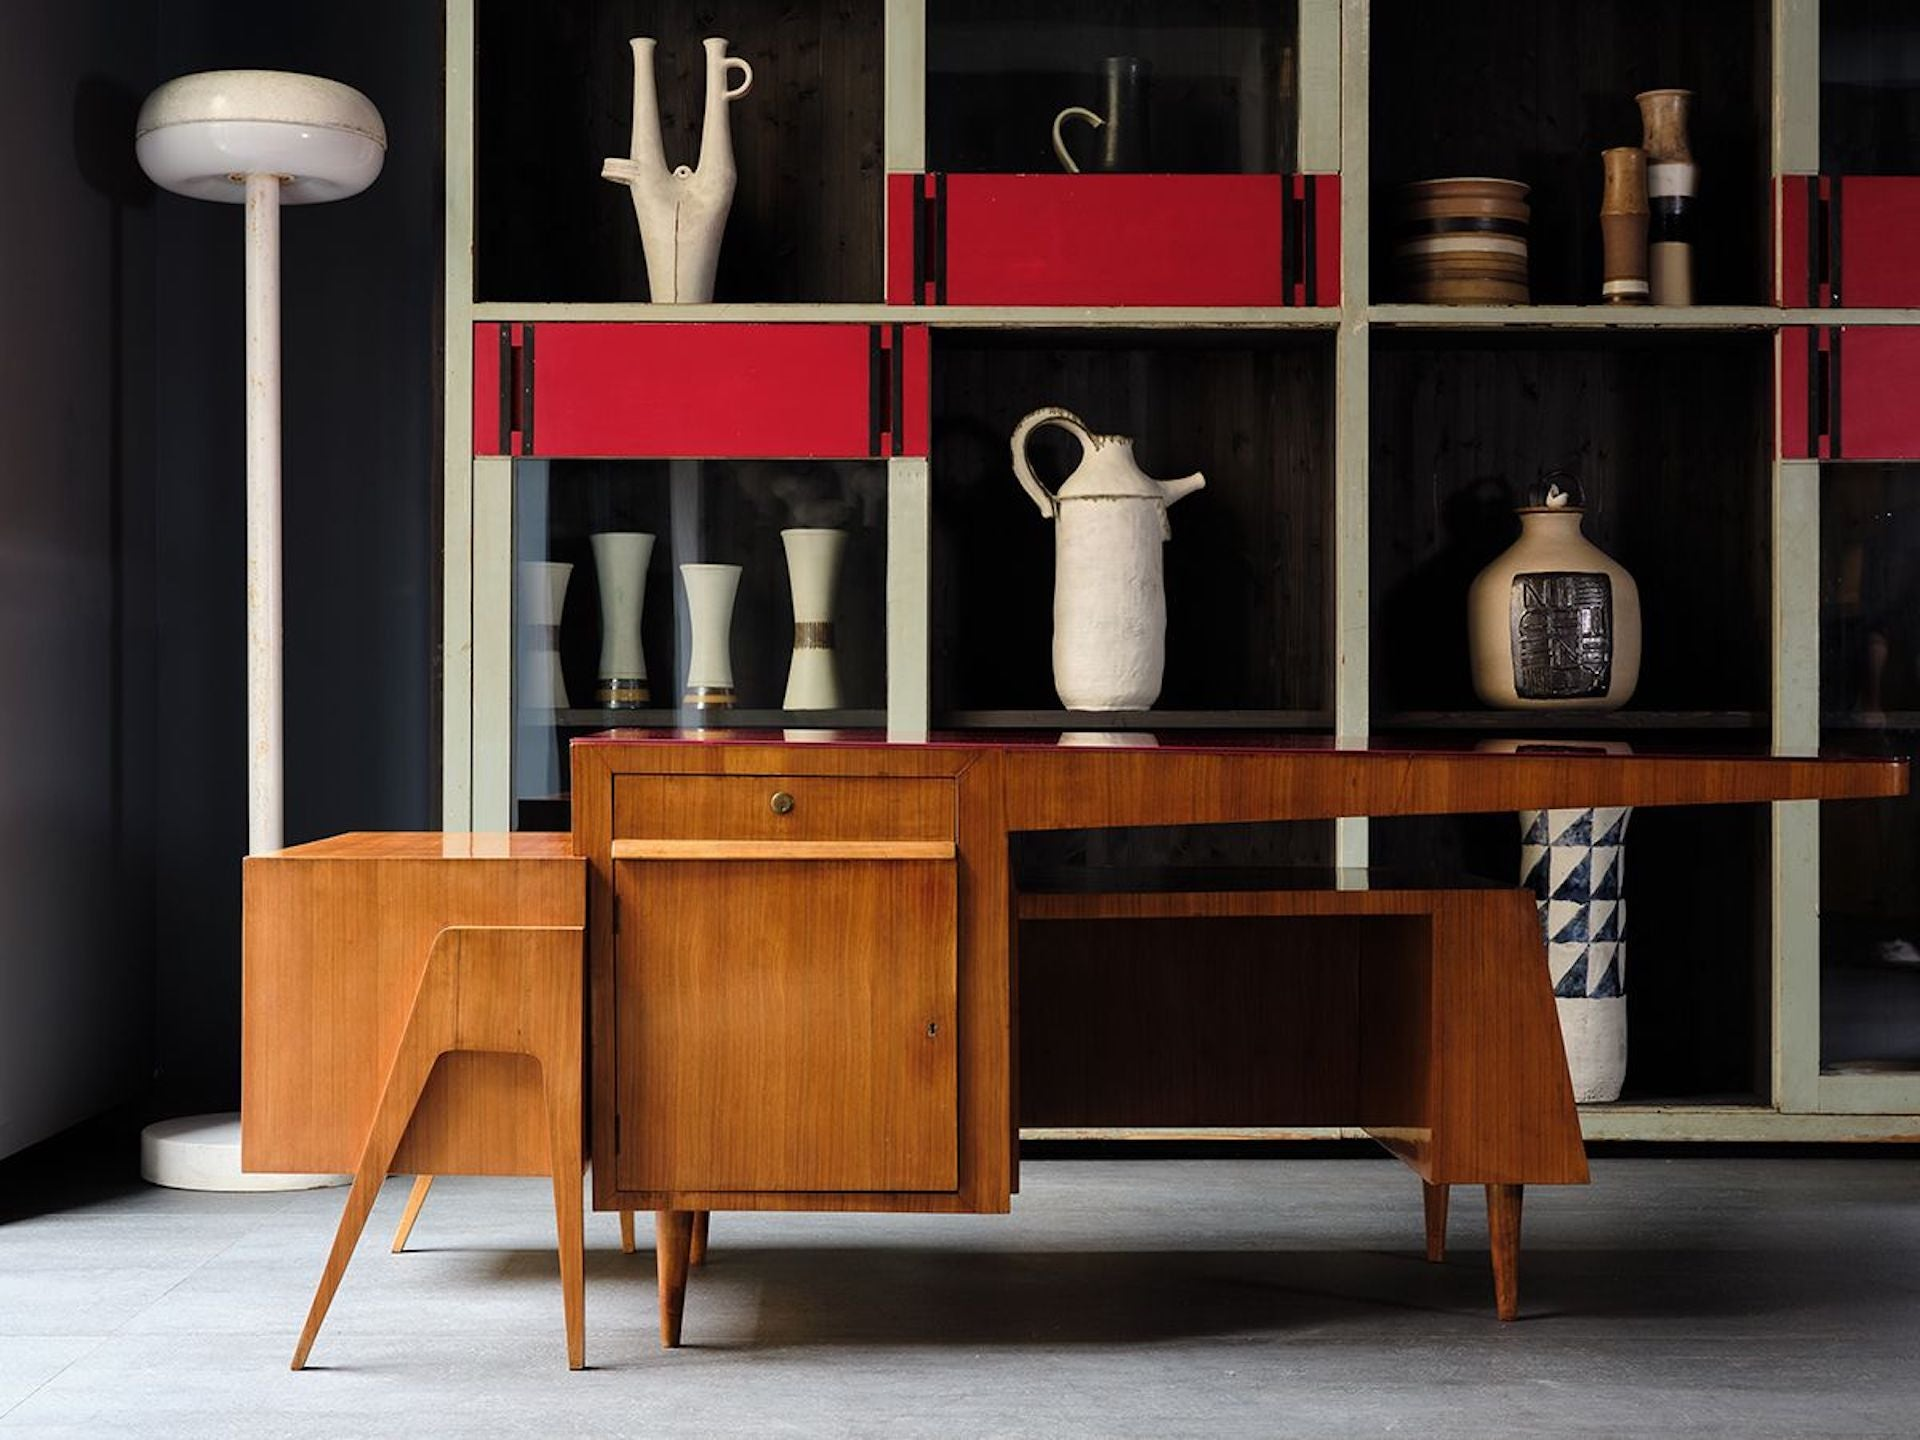 """Unique Double Desk by Melchiorre Bega, presented by Galleria Rossella Colombari. """"A gorgeous marriage of gorgeous form and practical function."""" Photo © Galleria Rossella Colombari"""